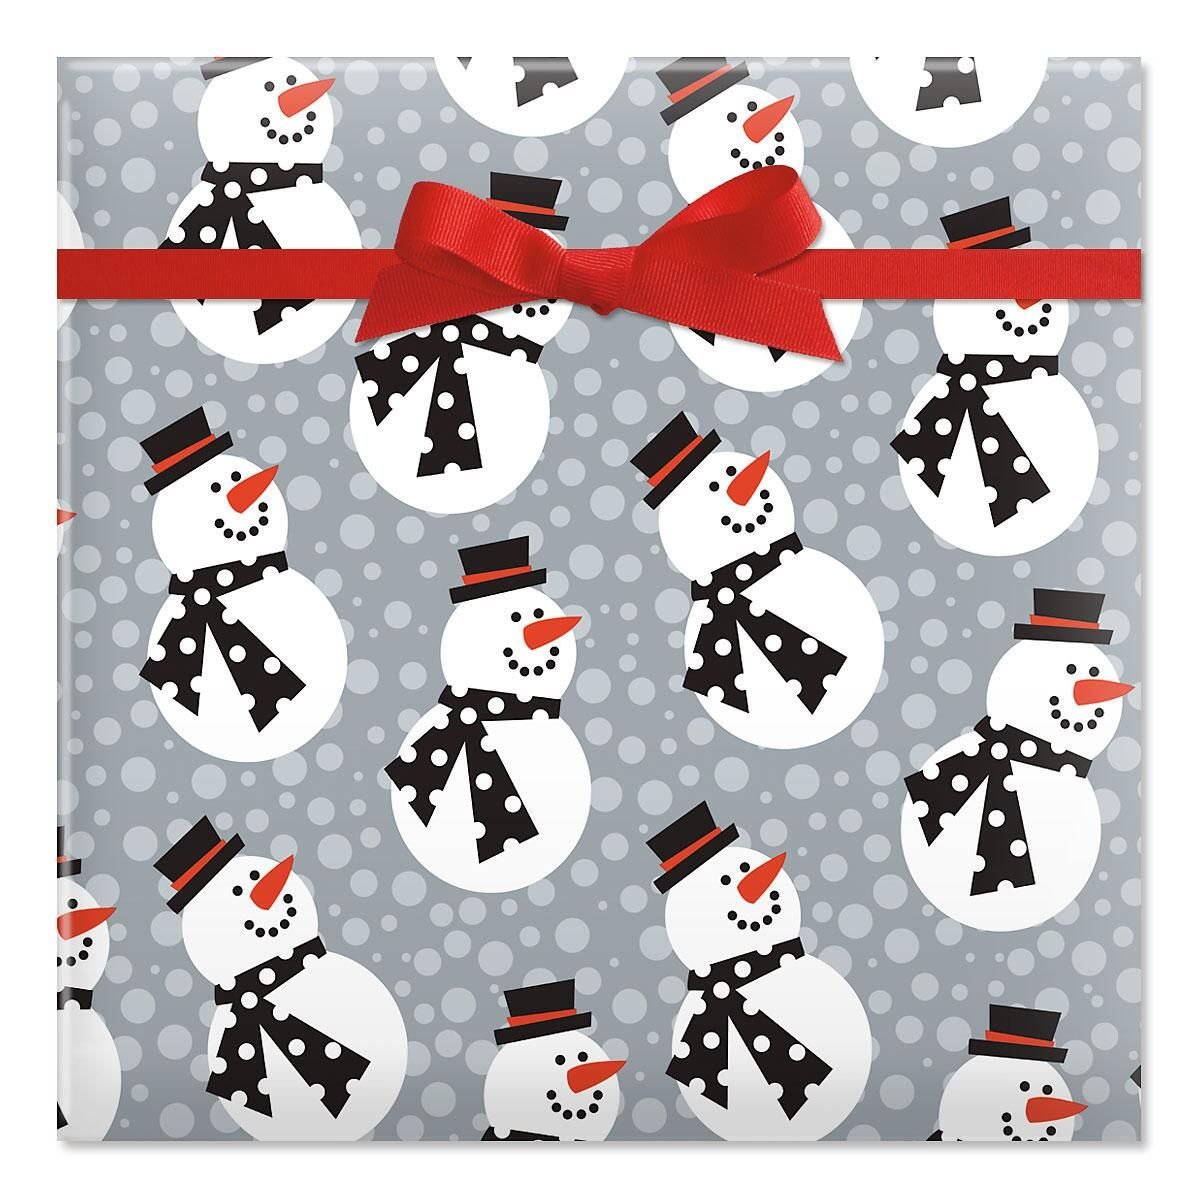 Snazzy Snowmen Holiday Jumbo Rolled Gift Wrap